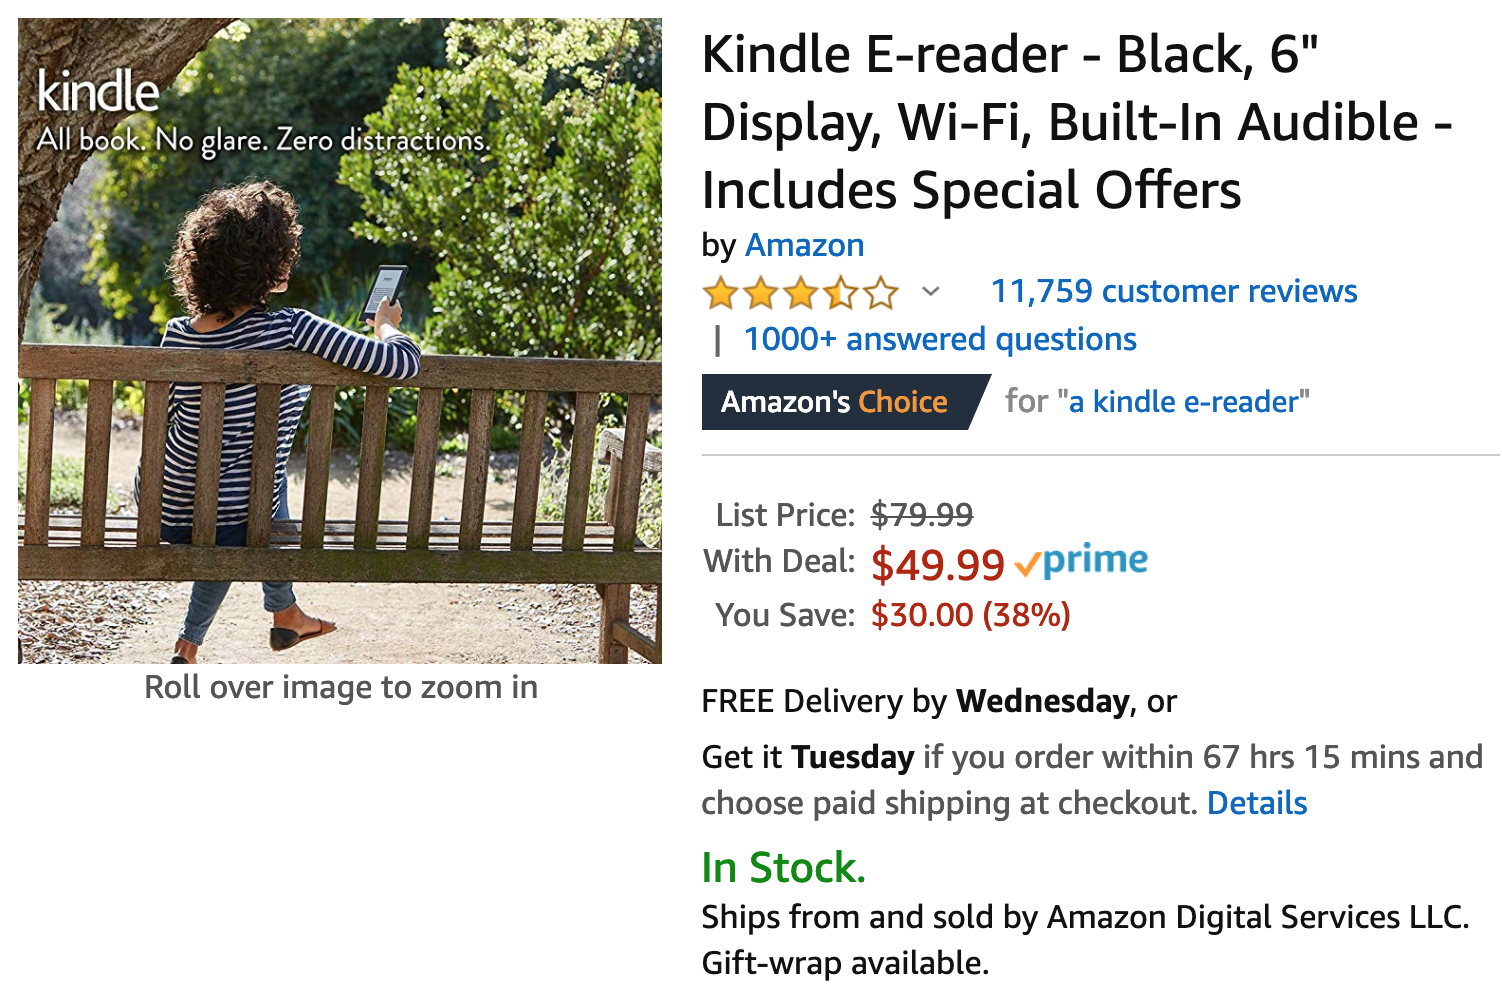 Amazon's on-again-off-again $30 Kindle discount is back on